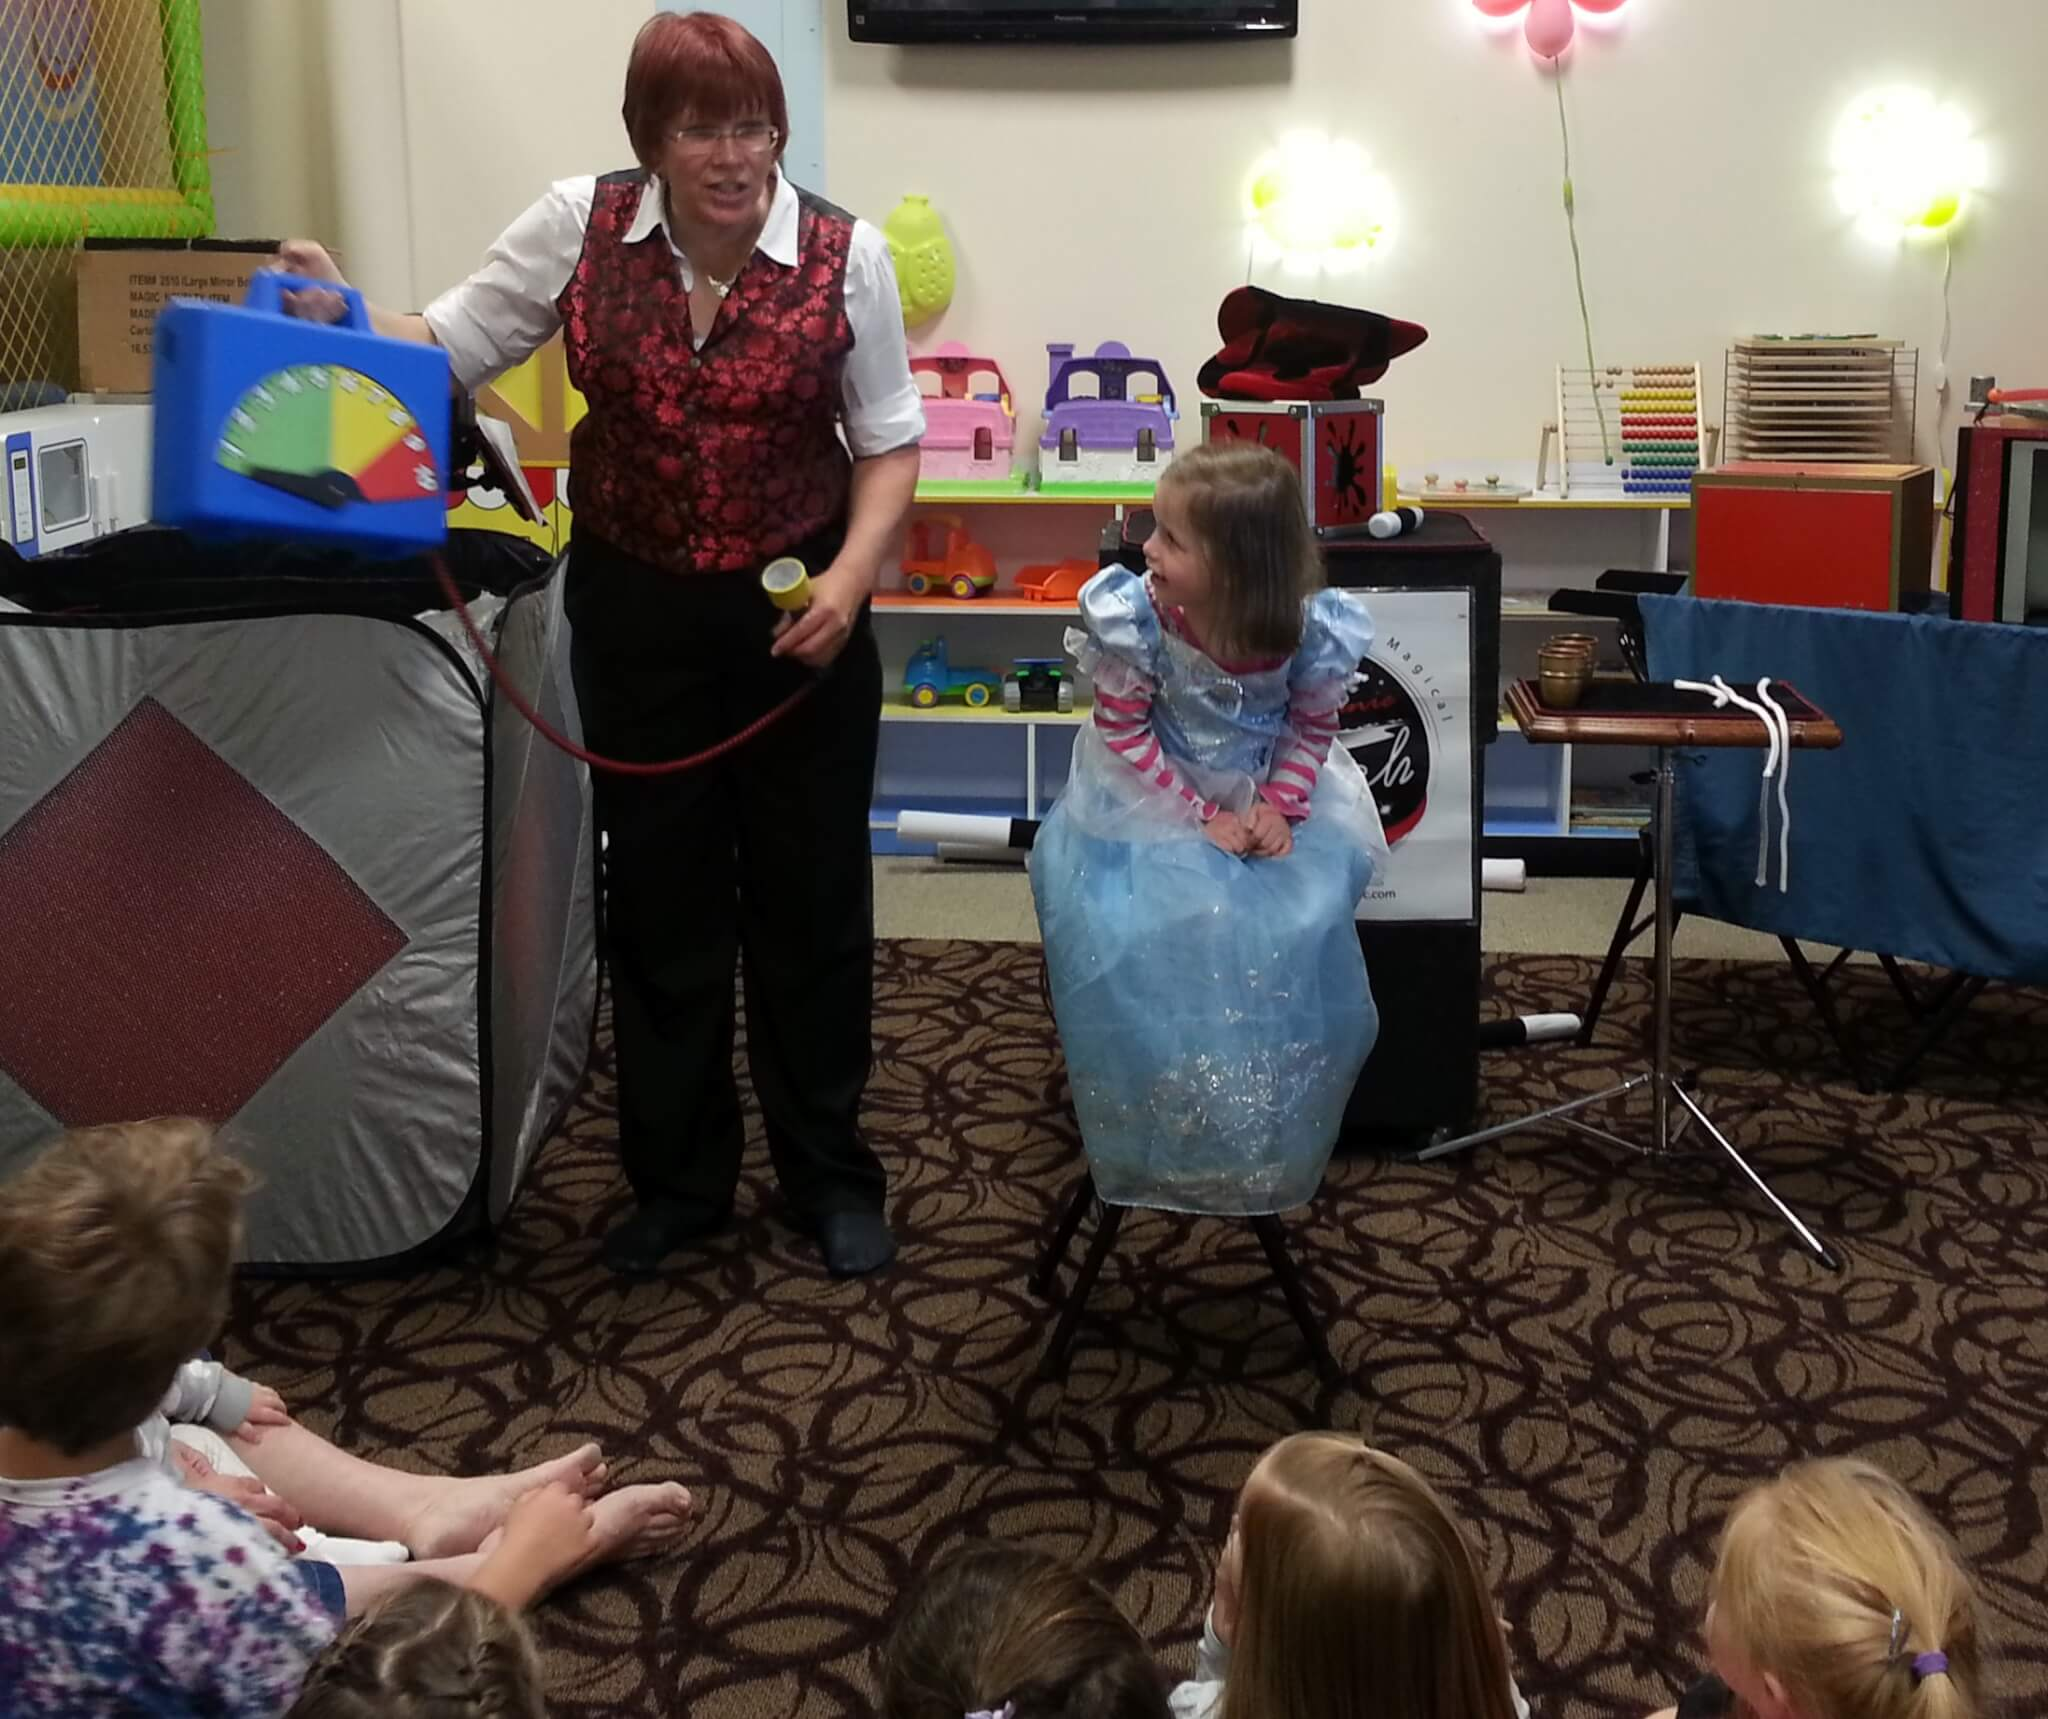 A young girl in a princess dress looks on as children's magician Stephanie Beach performs a birthday magic show.